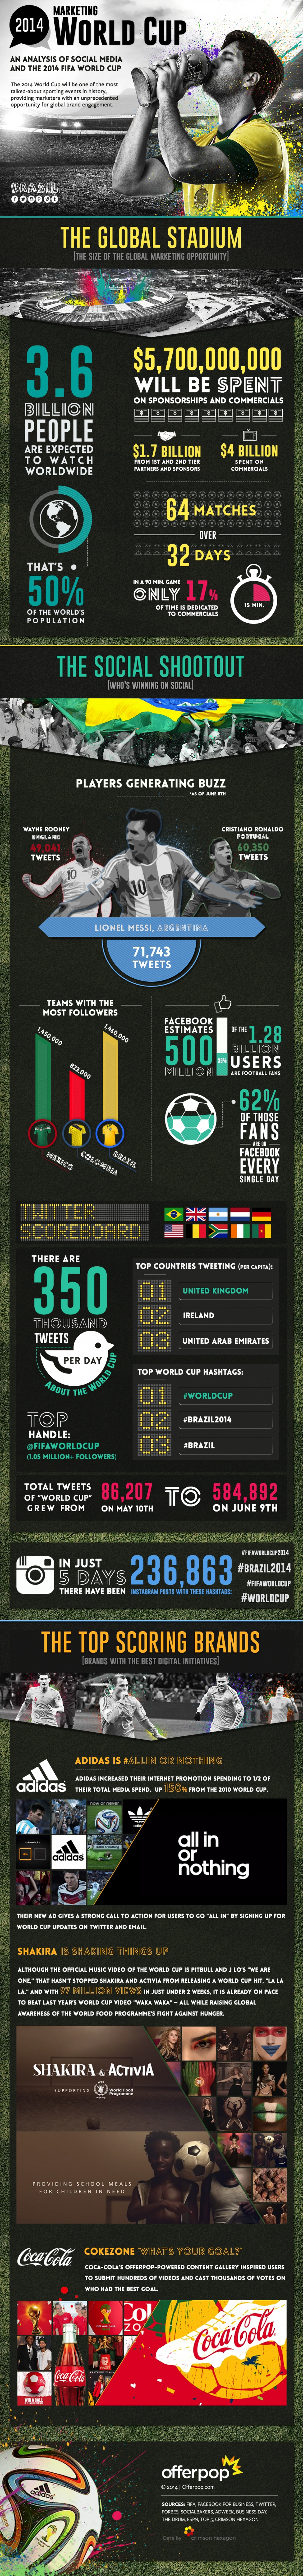 2014 Marketing World Cup Infographic